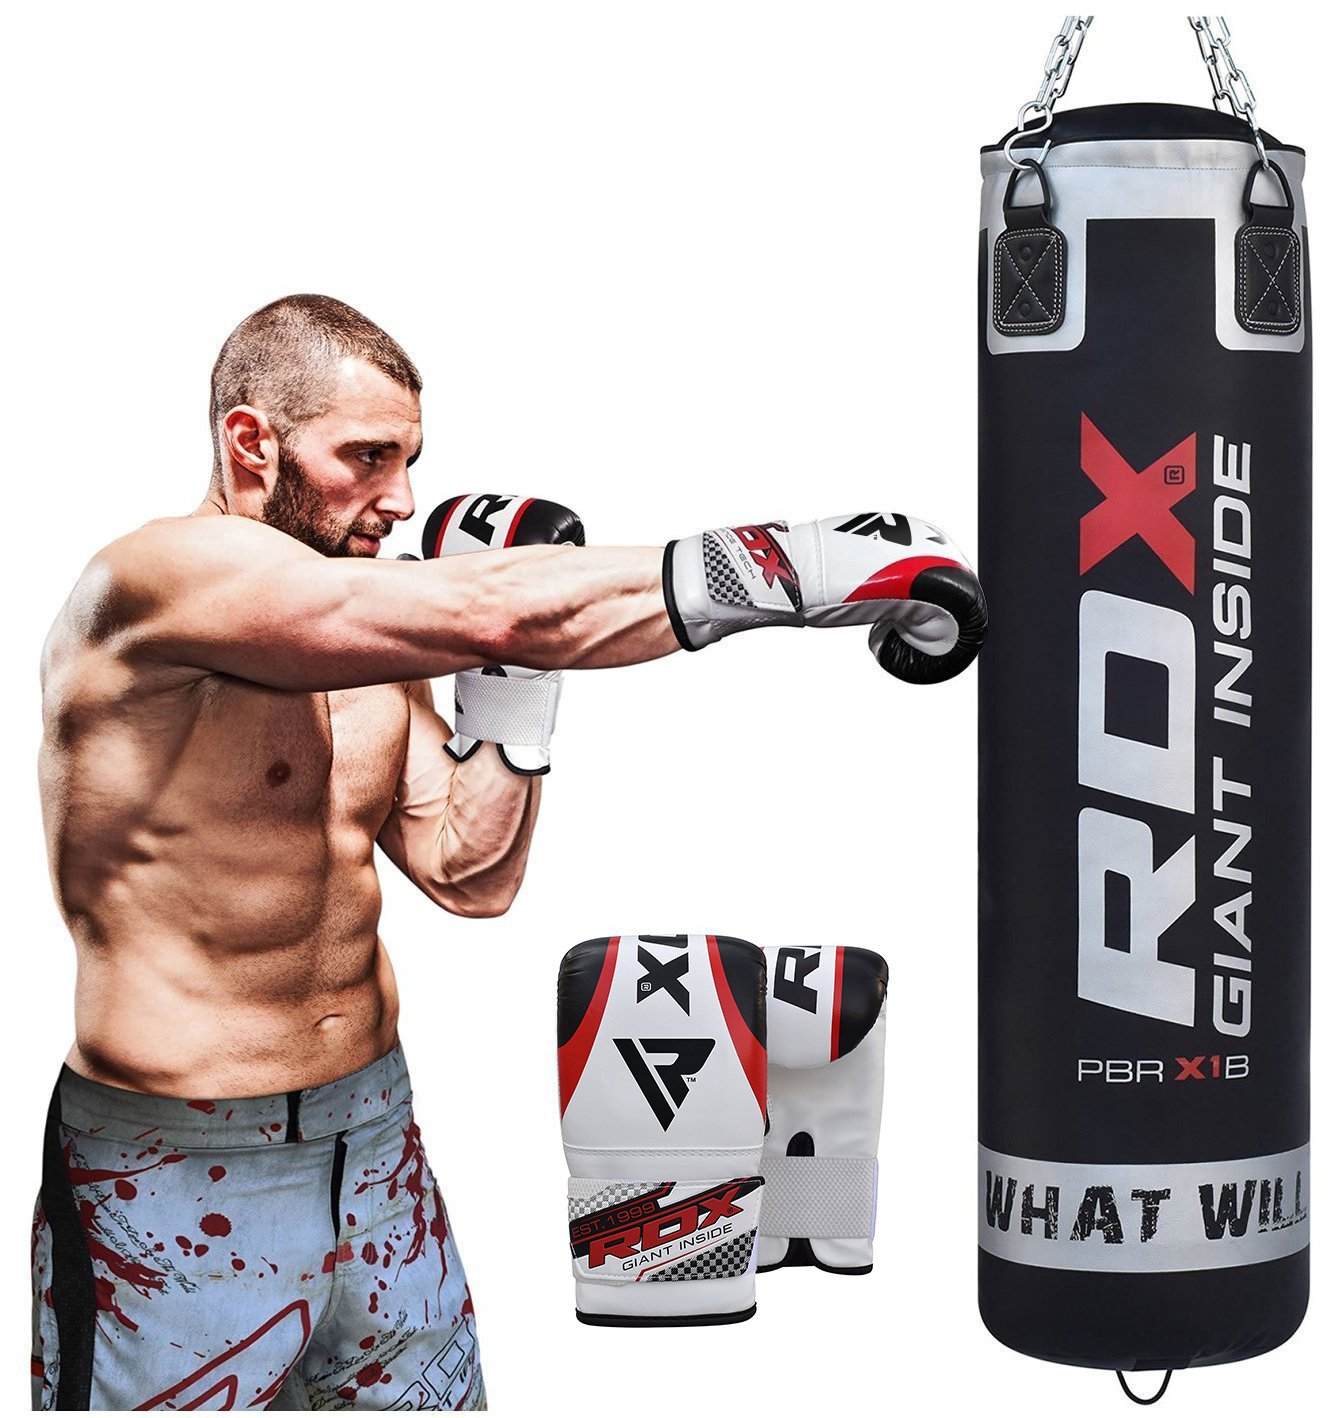 Best Punch Bag For Home